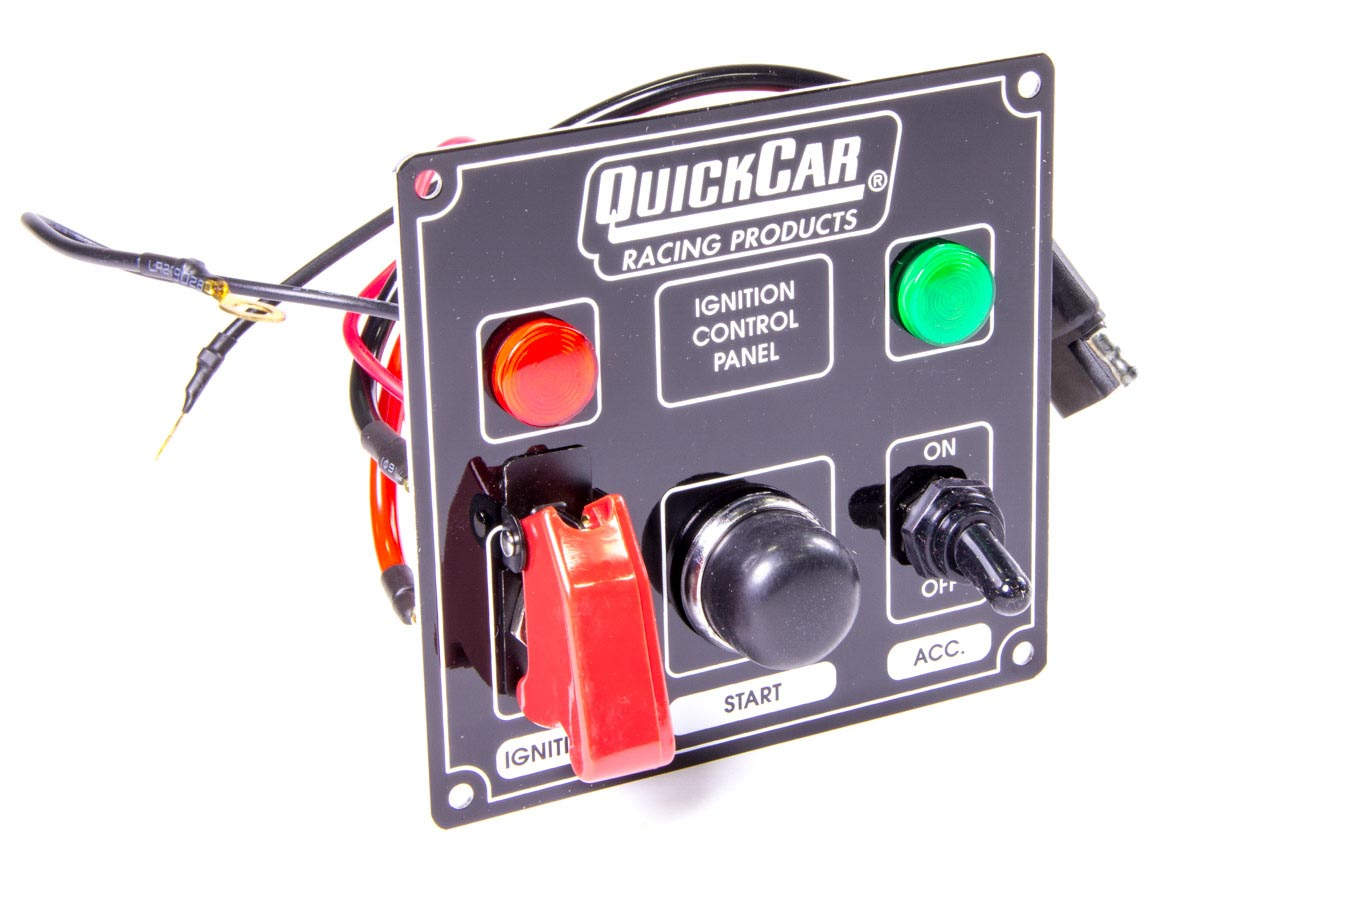 QRP50-823 Quickcar Ignition Control Panel Wiring Diagram on